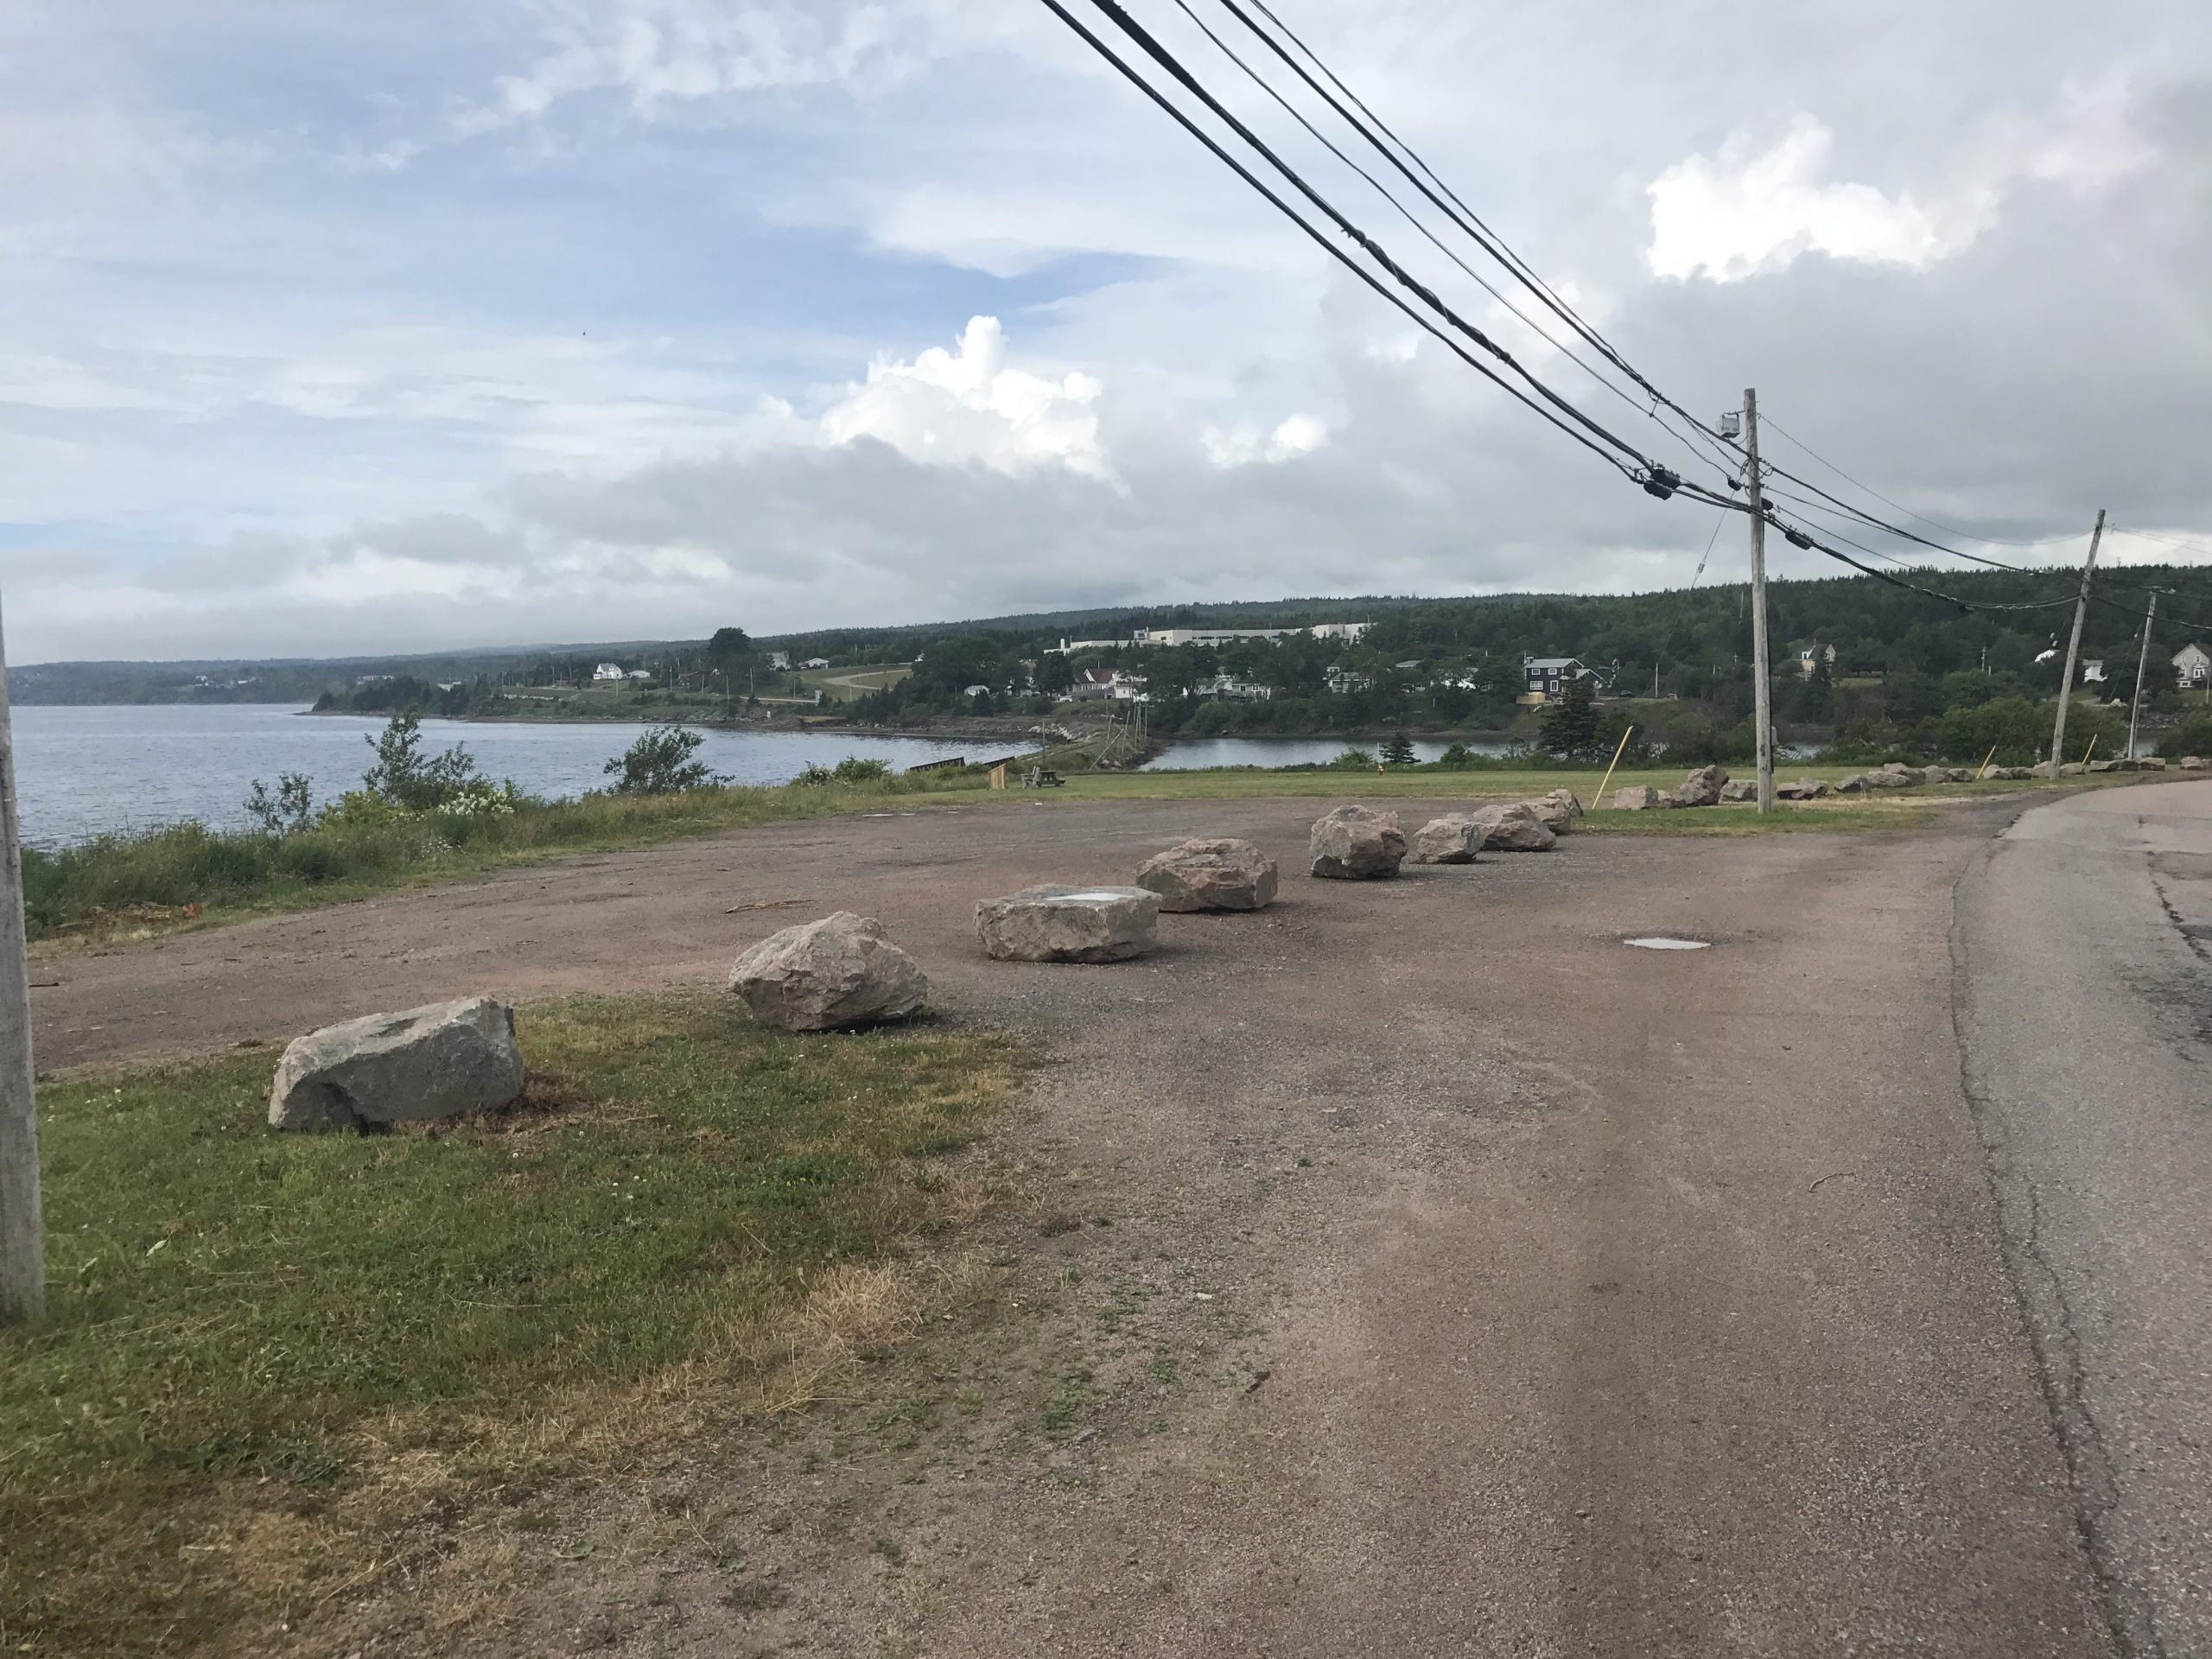 Port Hawkesbury officials receive mixed feedback after banning camping at unauthorized site